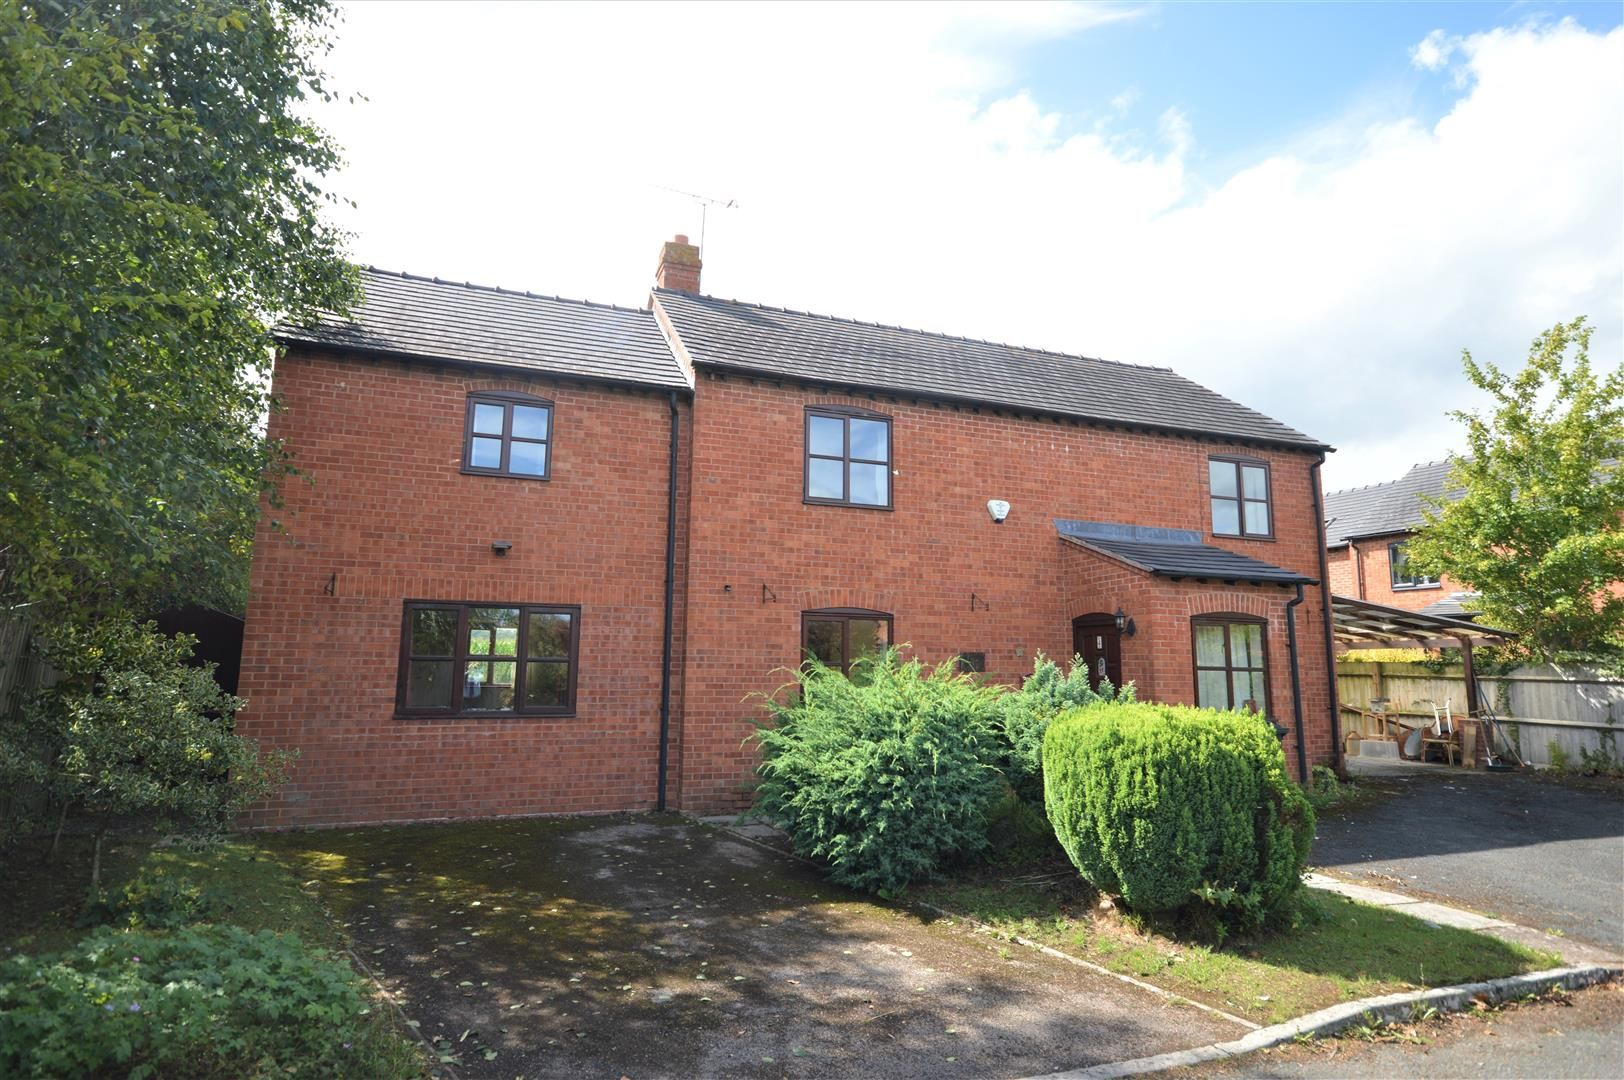 4 bed detached for sale in Bodenham - Property Image 1